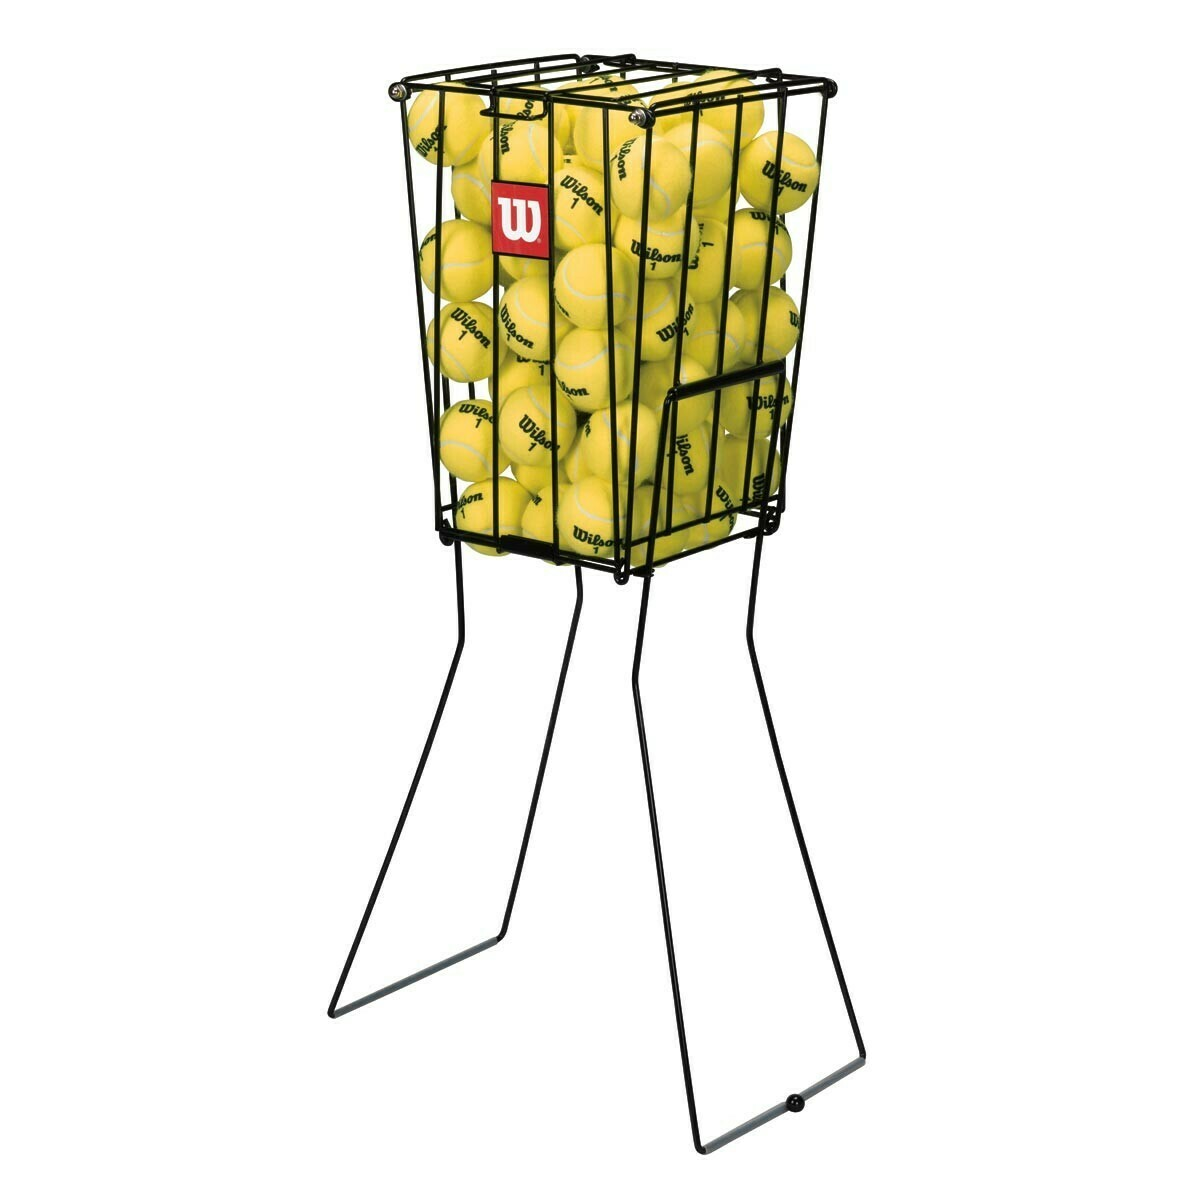 Wilson 75 Tennis Ball Pick-Up Hopper